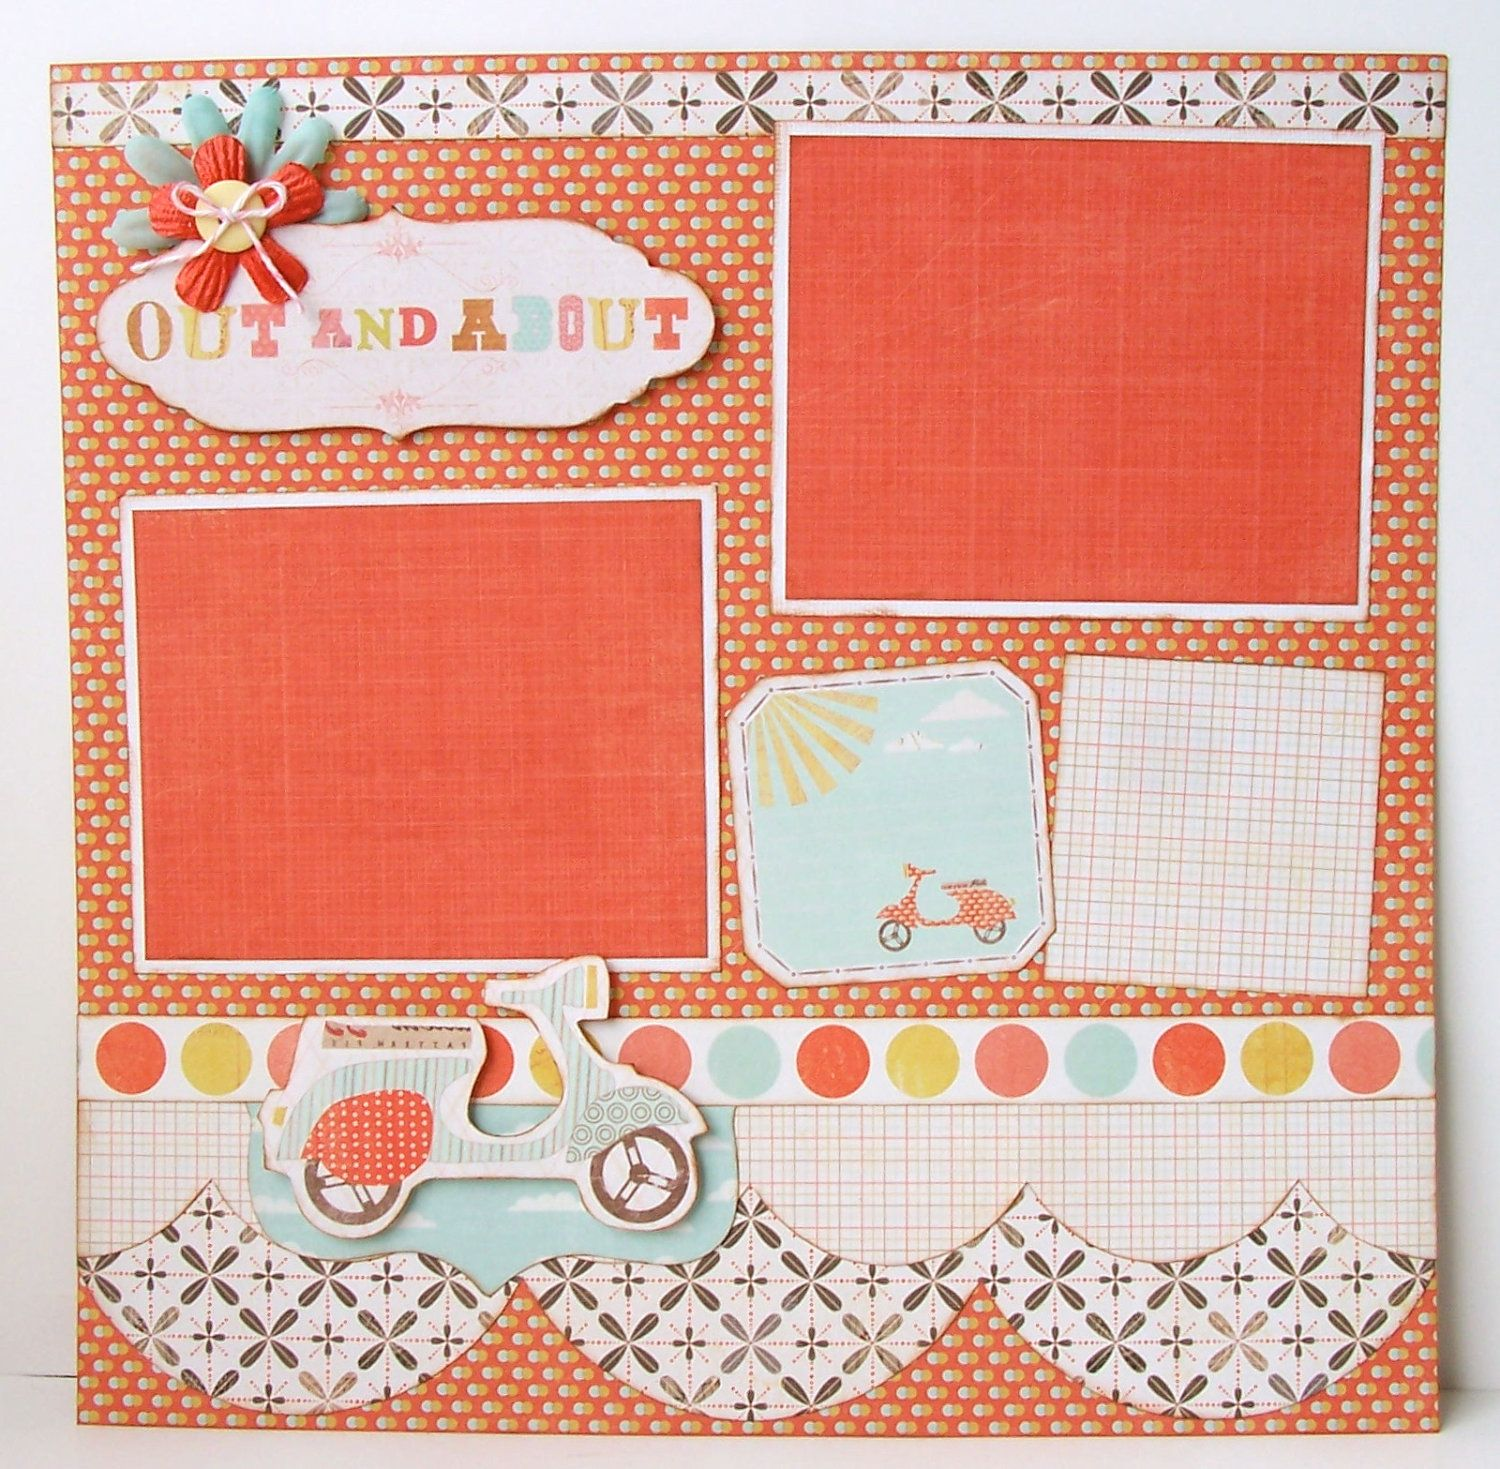 How to scrapbook 8x8 layouts - Out And About Premade 1 Page 12x12 Scrapbook Layout 8 95 Via Etsy